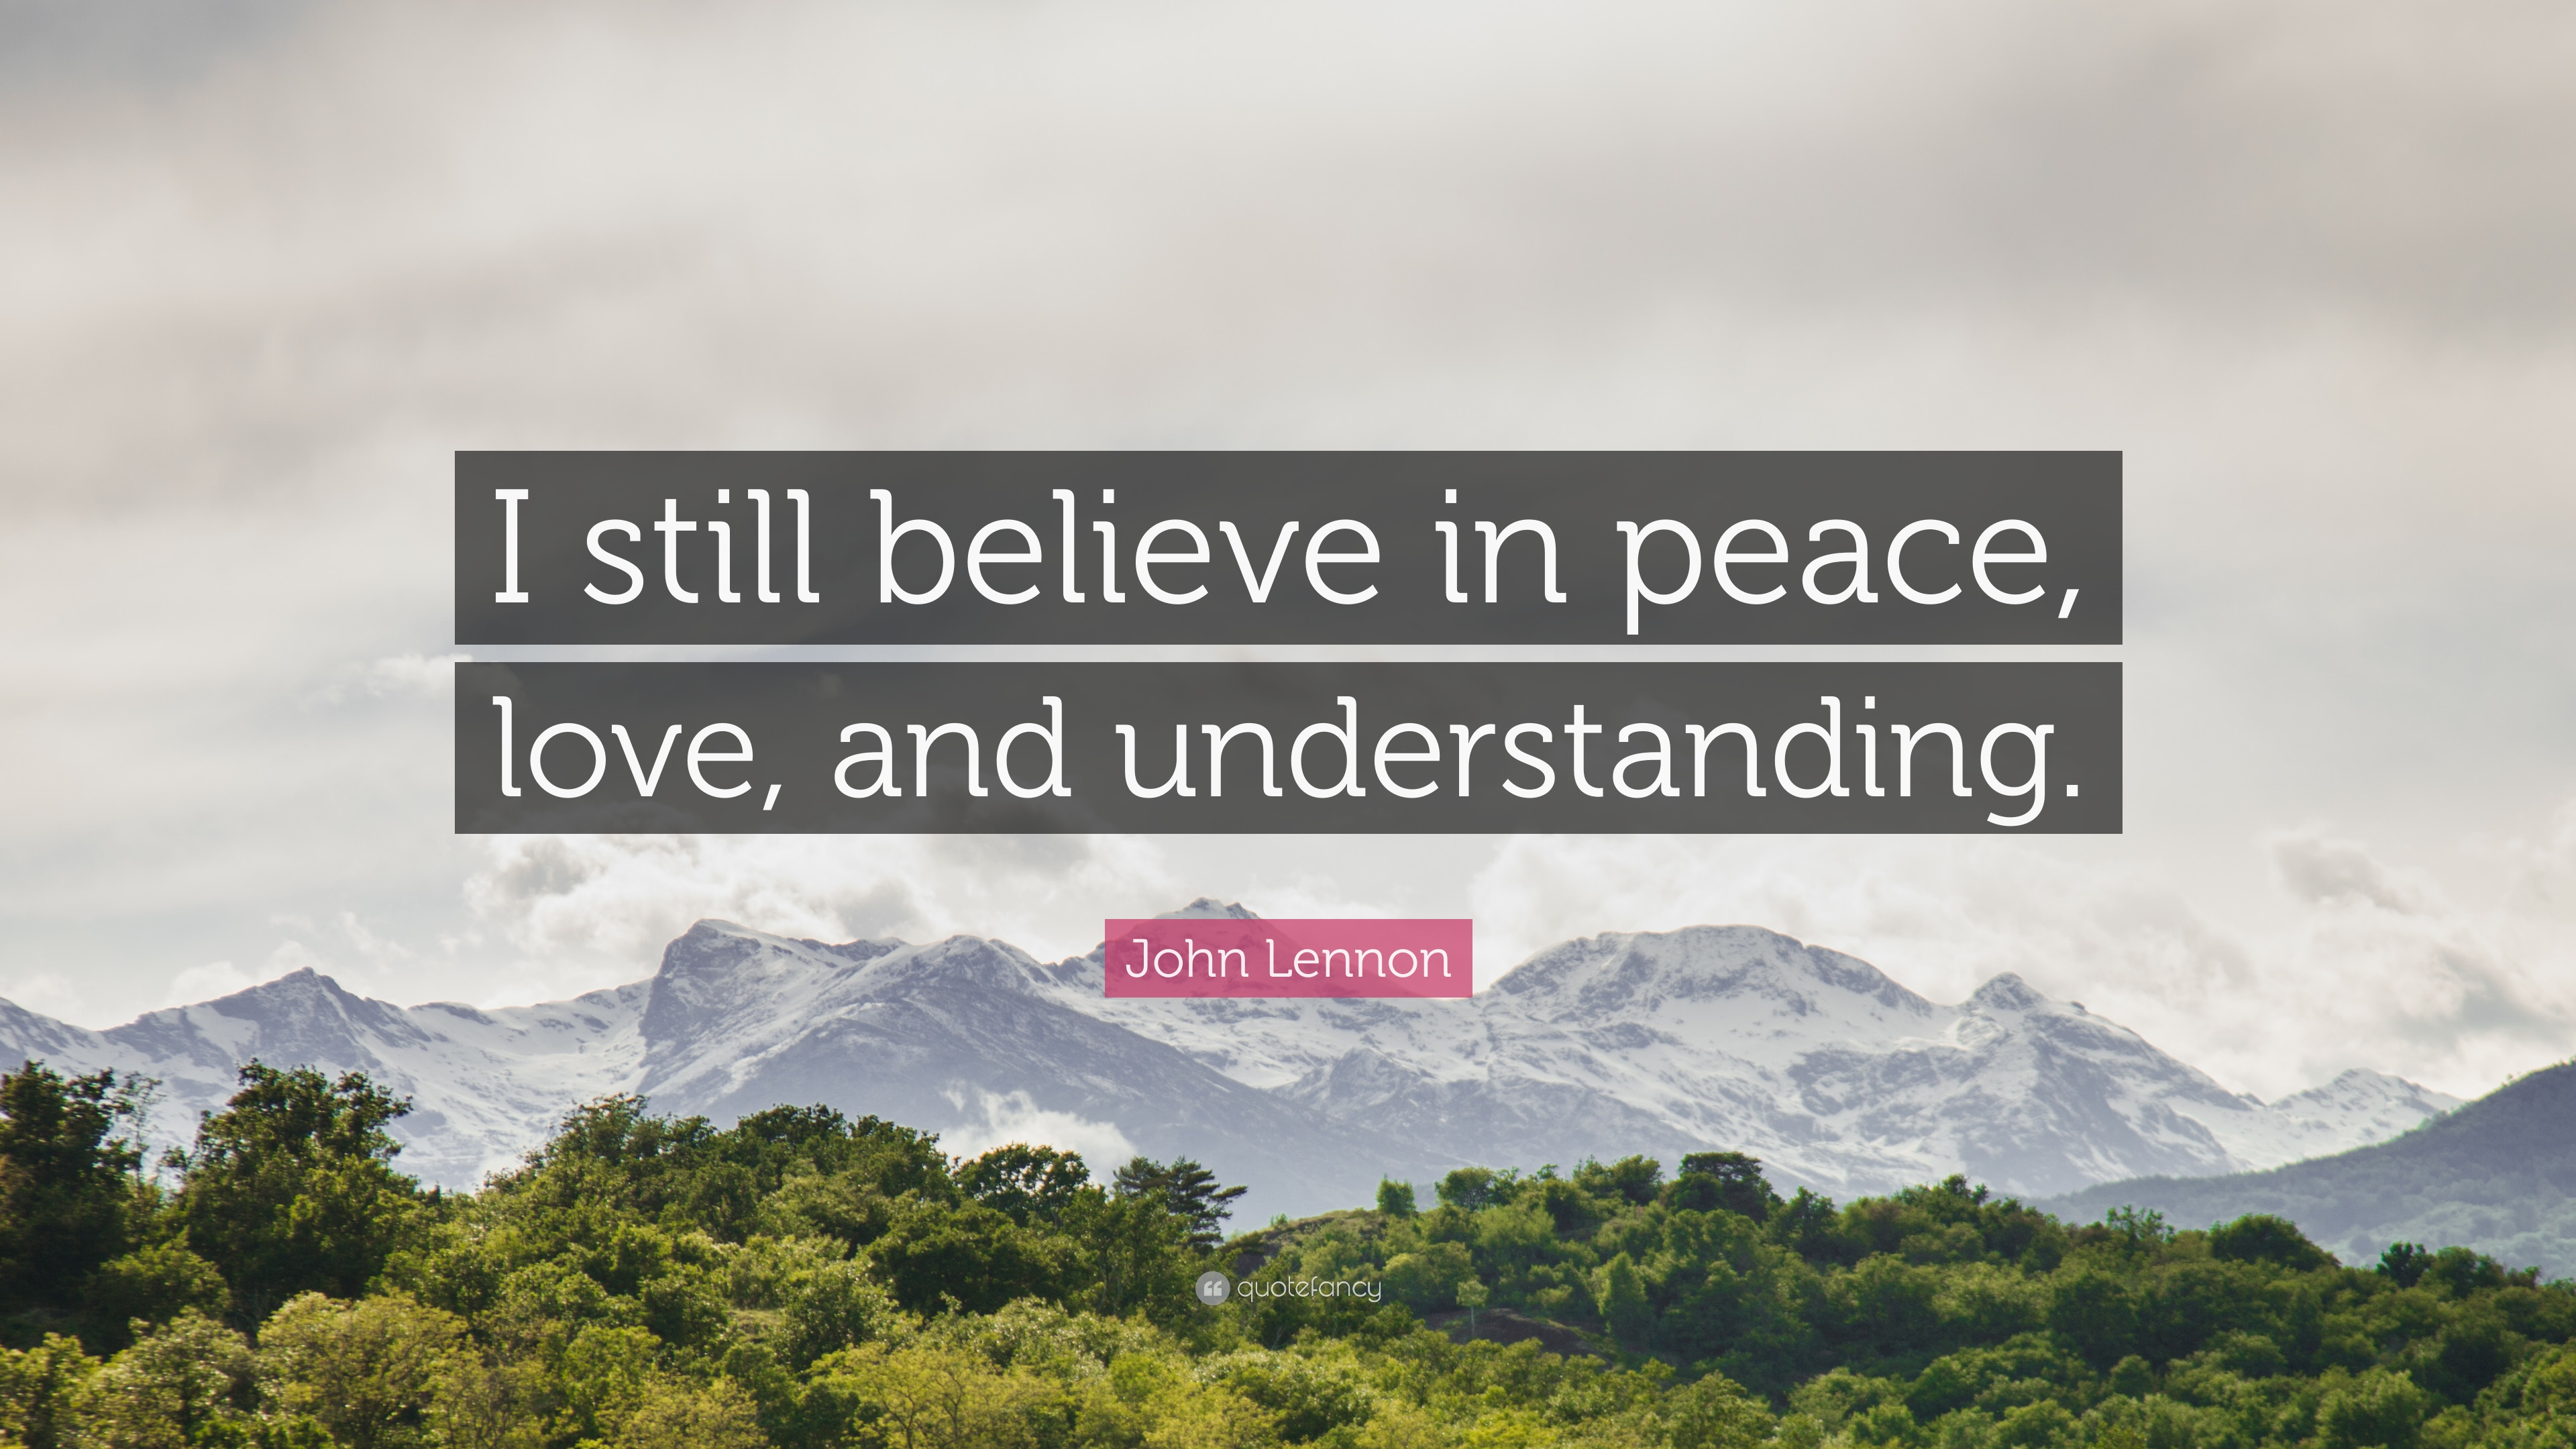 Quotes On Peace And Love Quotes About Peace Love And Understanding Quotes About Love And